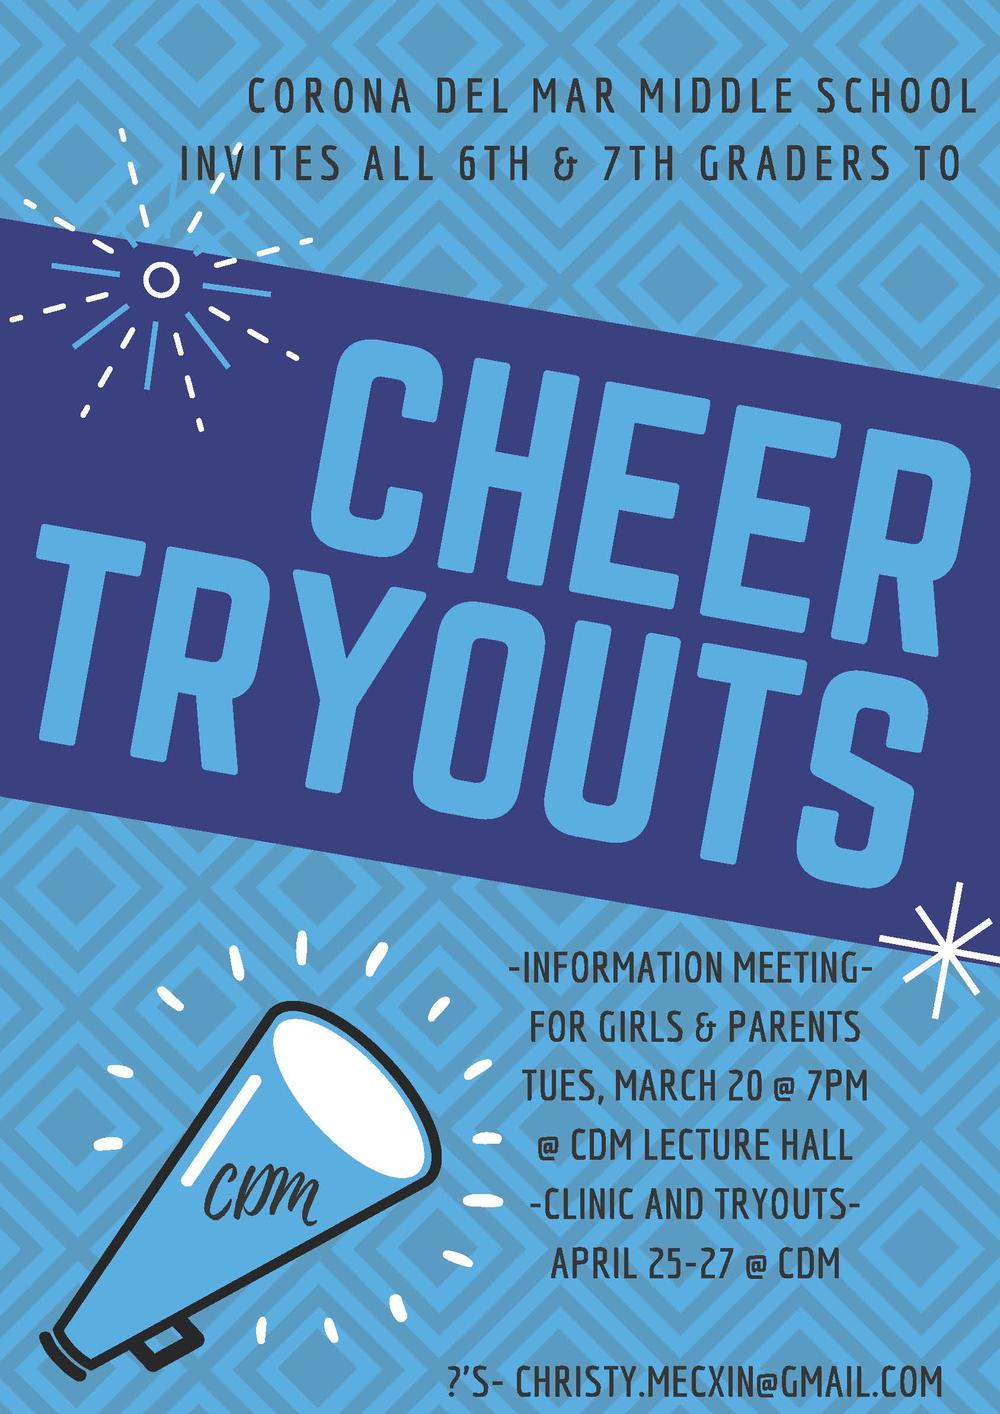 MS Cheer Tryout flyer